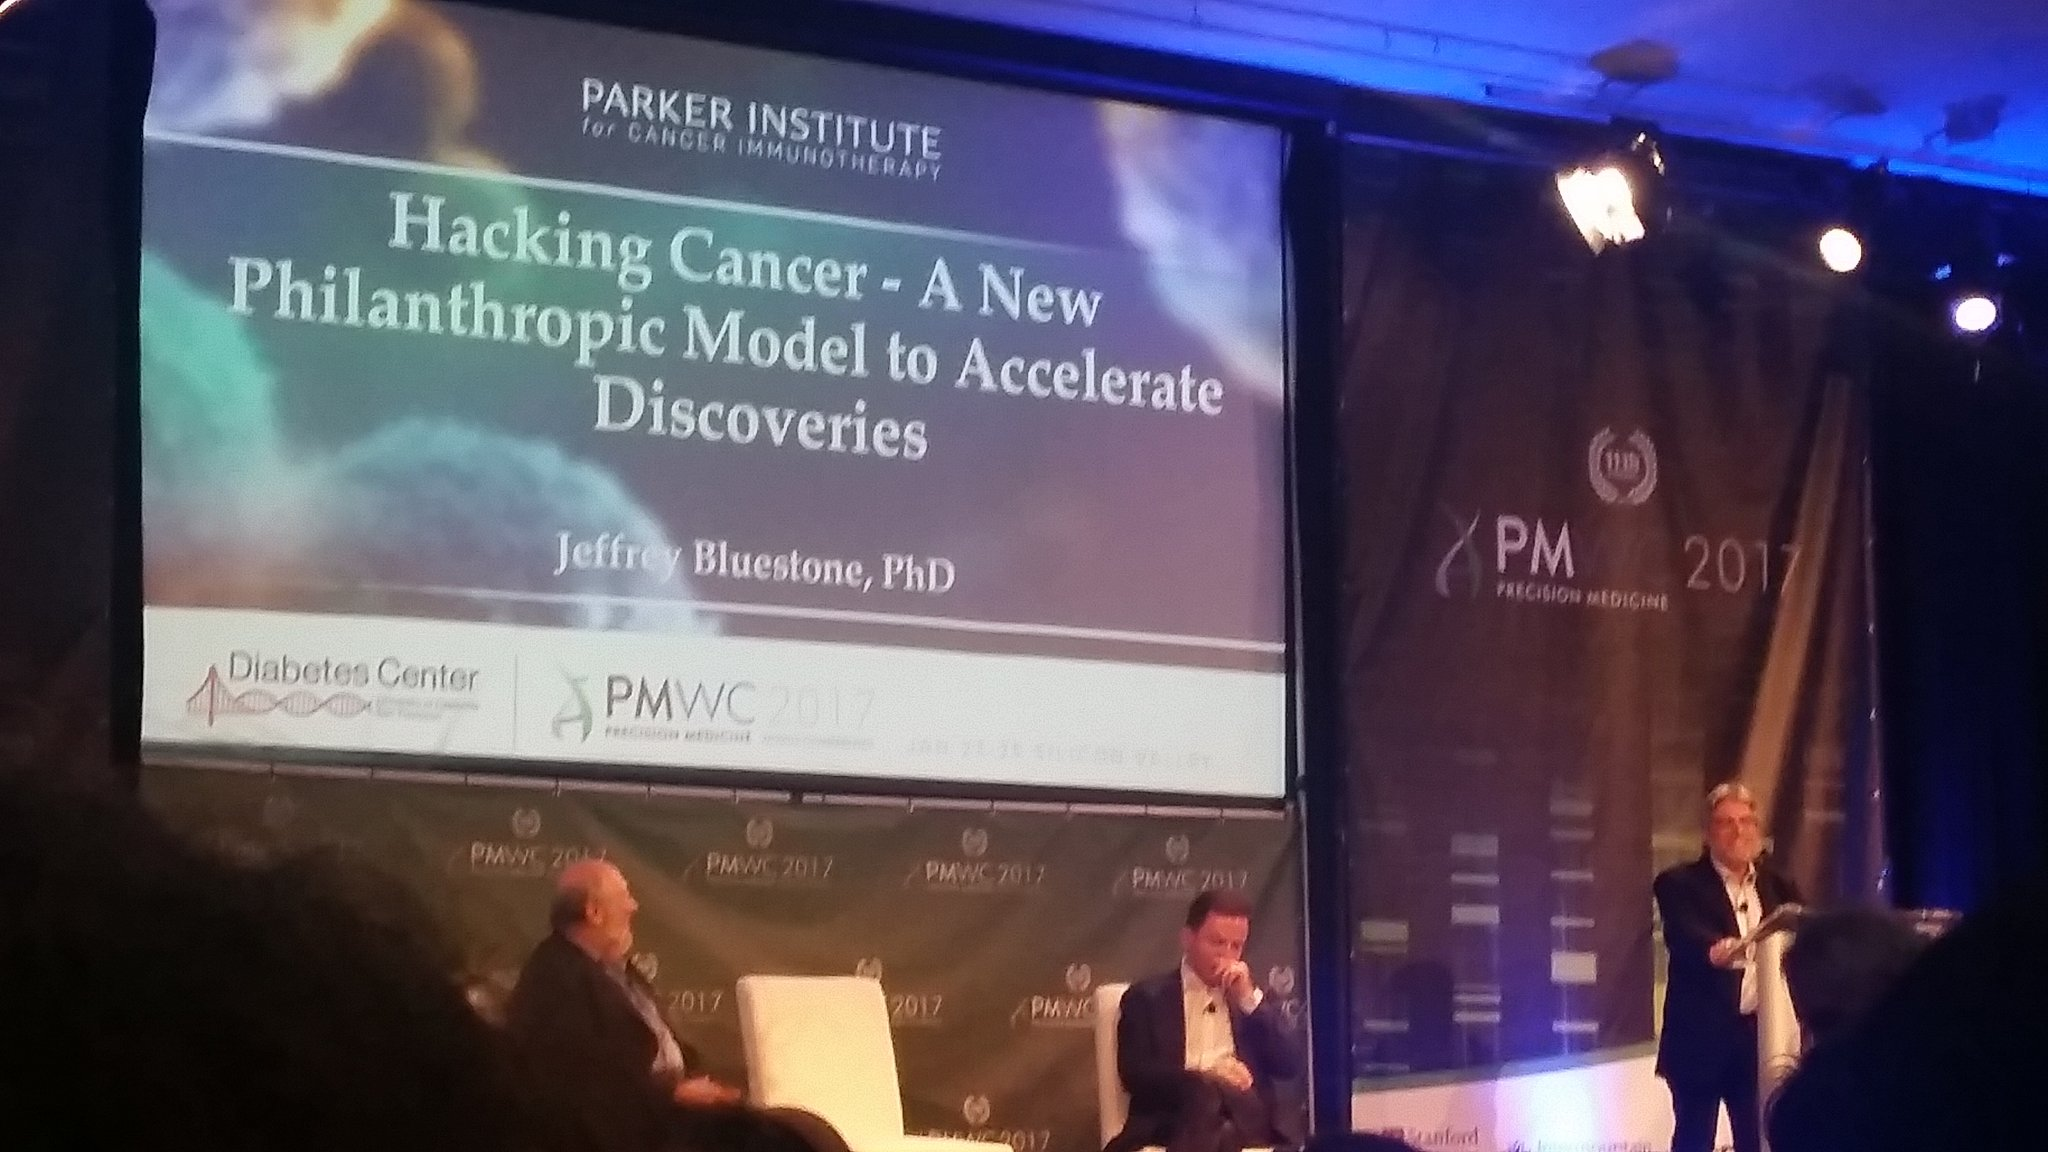 Hacking Cancer! #PMWC17 Yes! https://t.co/amP3yS6wok